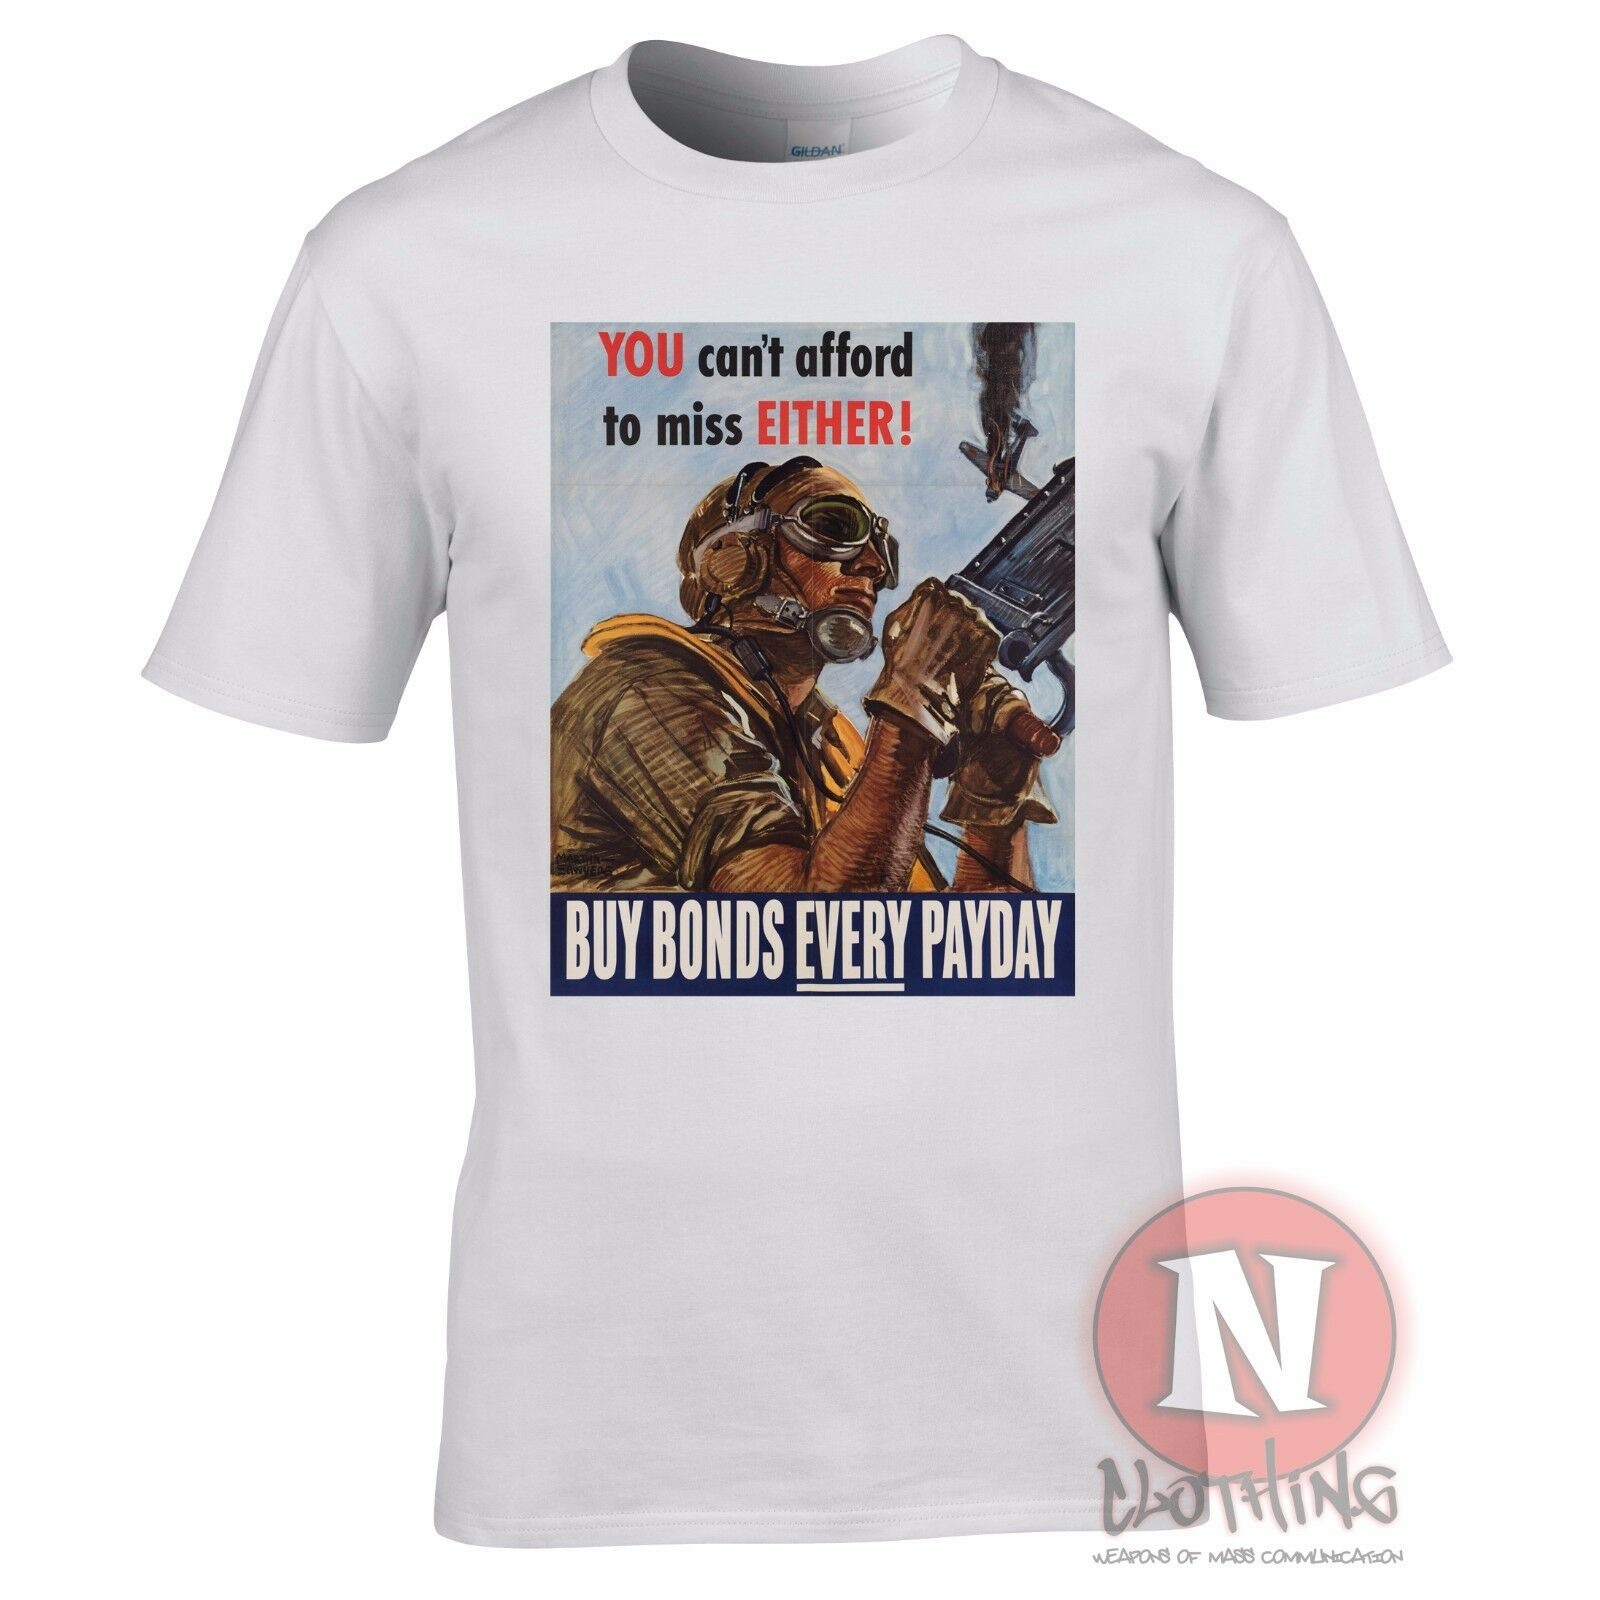 World War 2 Usa Propaganda Buy Bonds Every Payday T-Shirt Military History Unisex Tees image